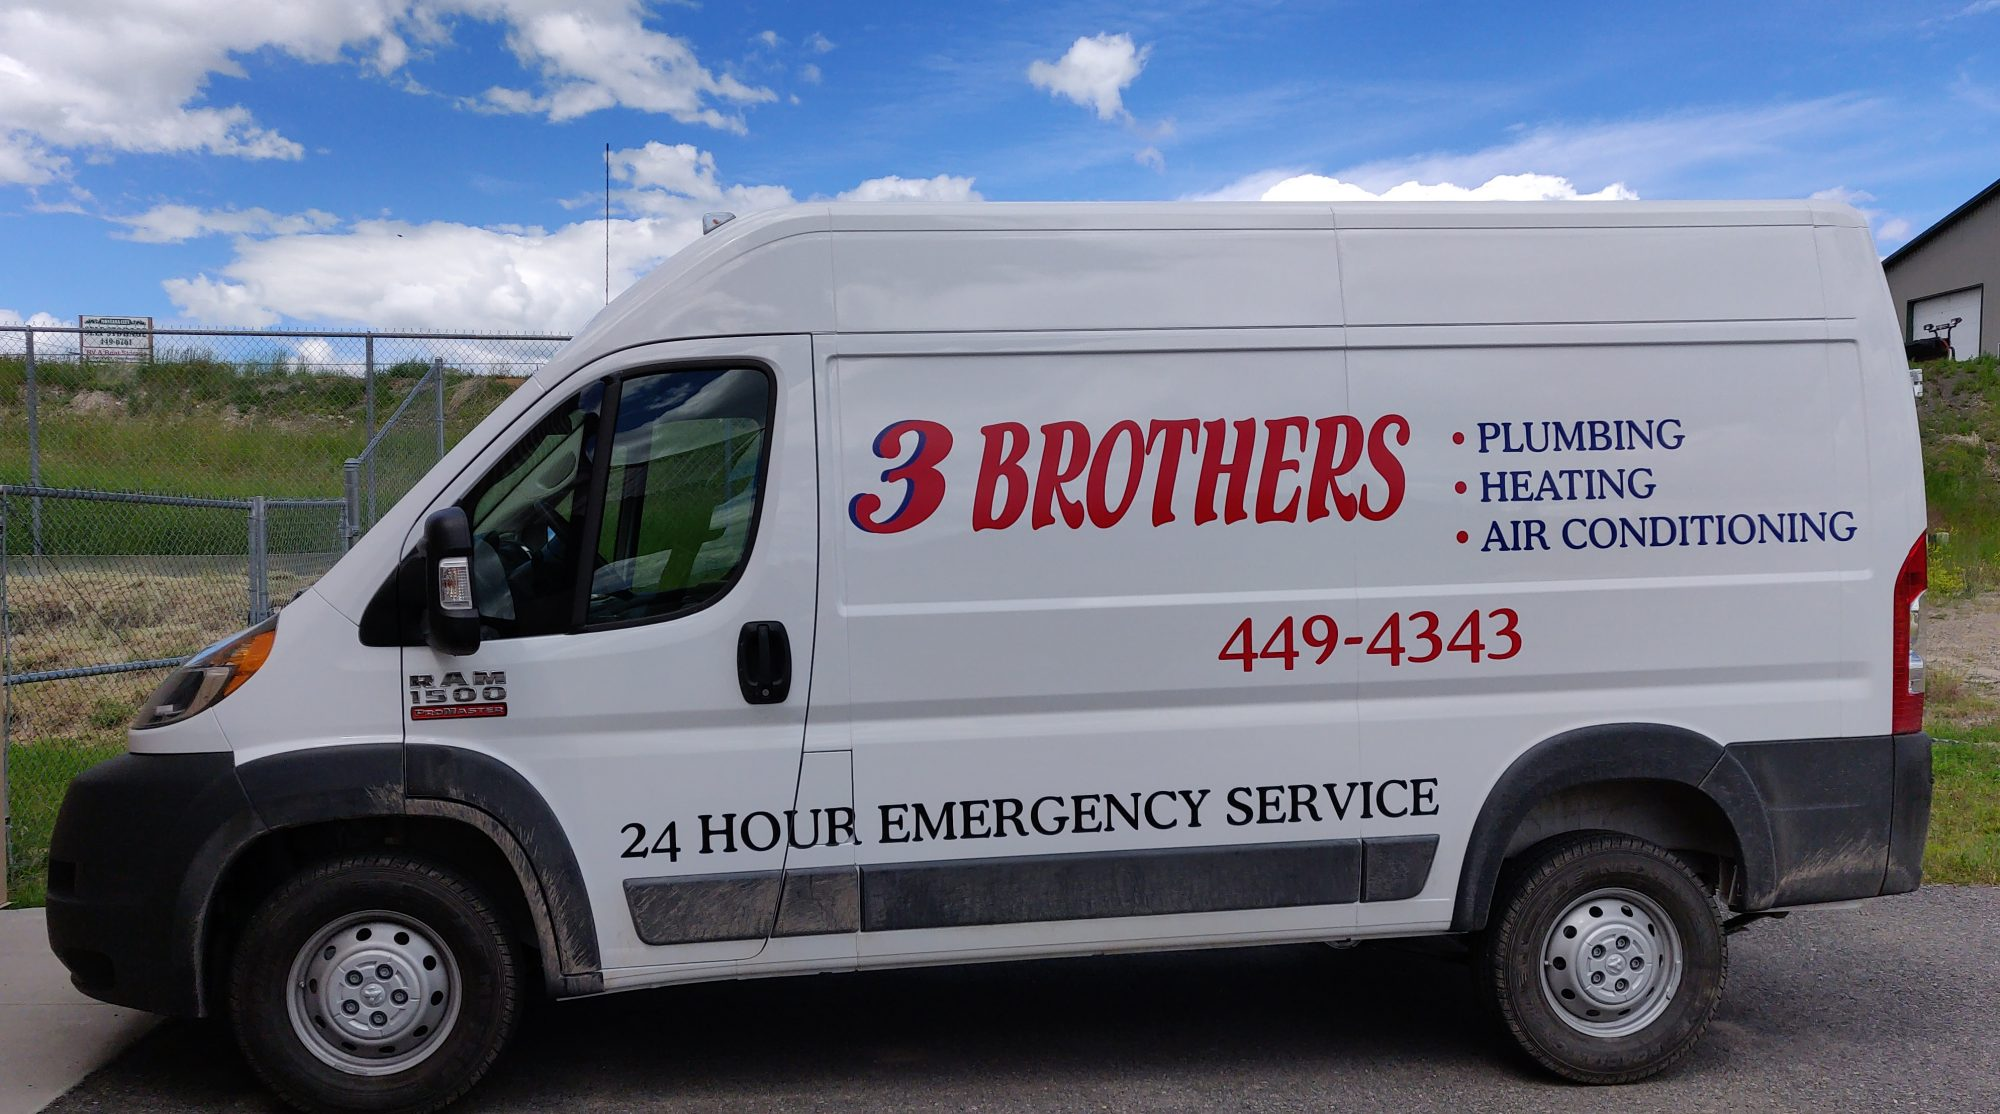 3 Brothers Plumbing & Heating